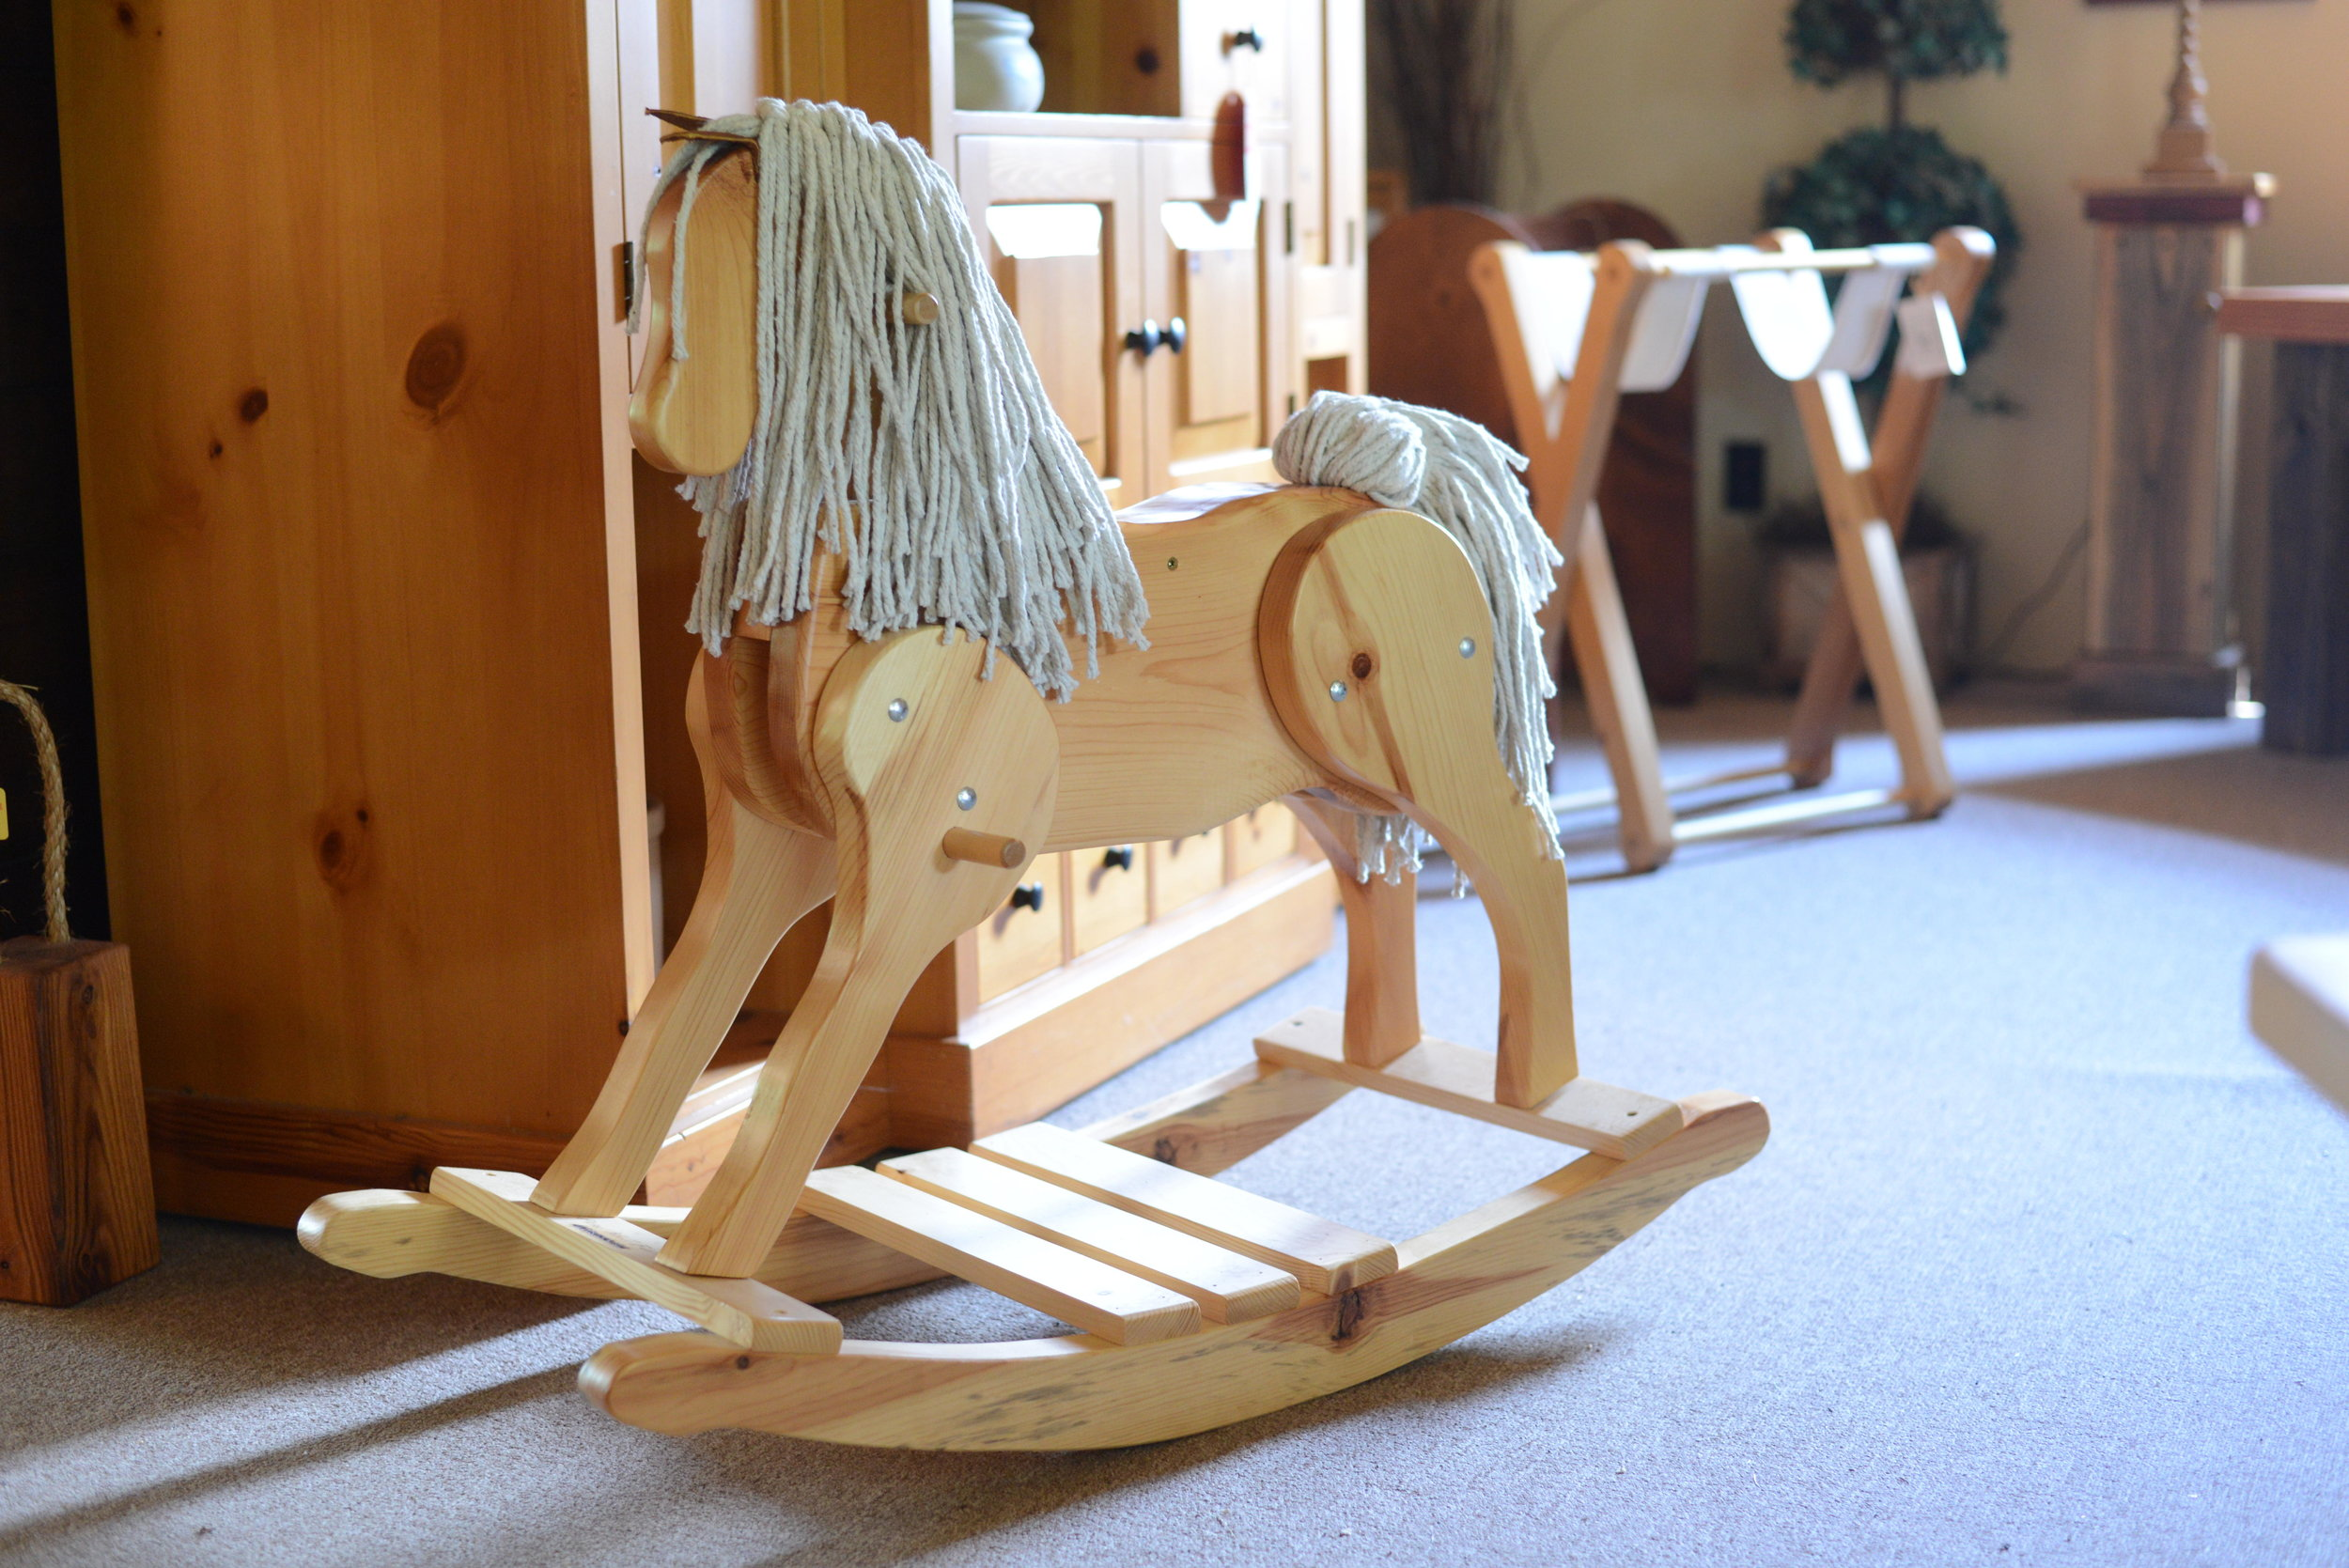 Roger and Shari Krause started Pine Mill Farm producing this rocking horse for wholesale catalogs in 1989. (Carter Jones/ FOCUS)